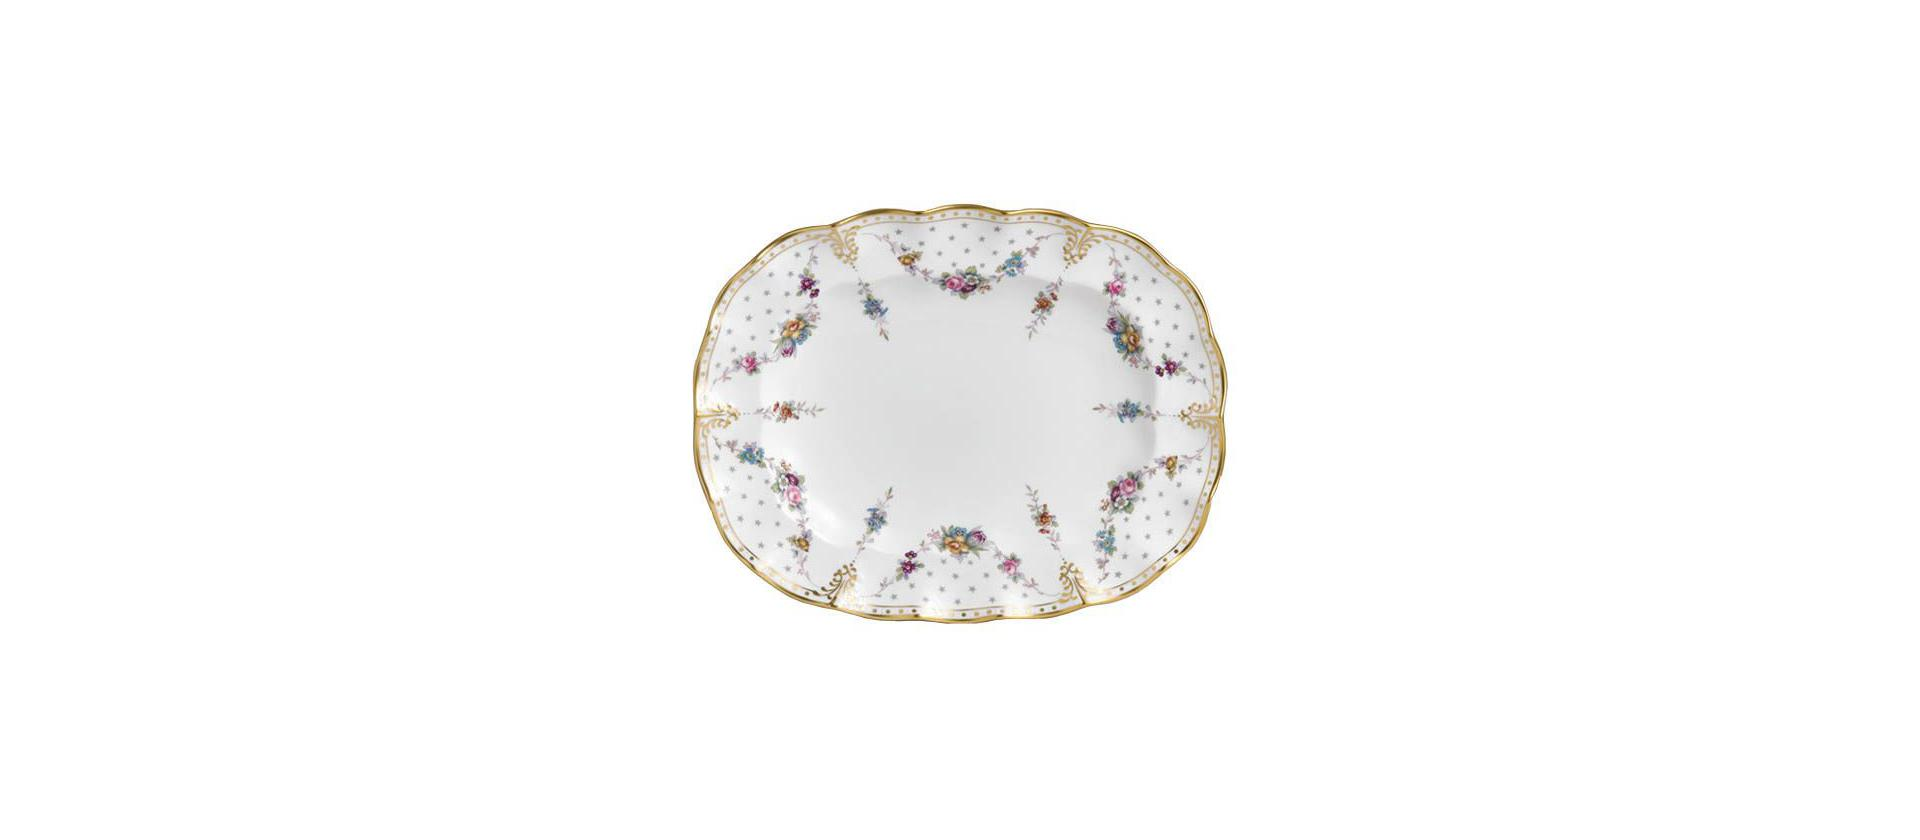 Dish Royal Crown Derby Antoinette 38 cm big